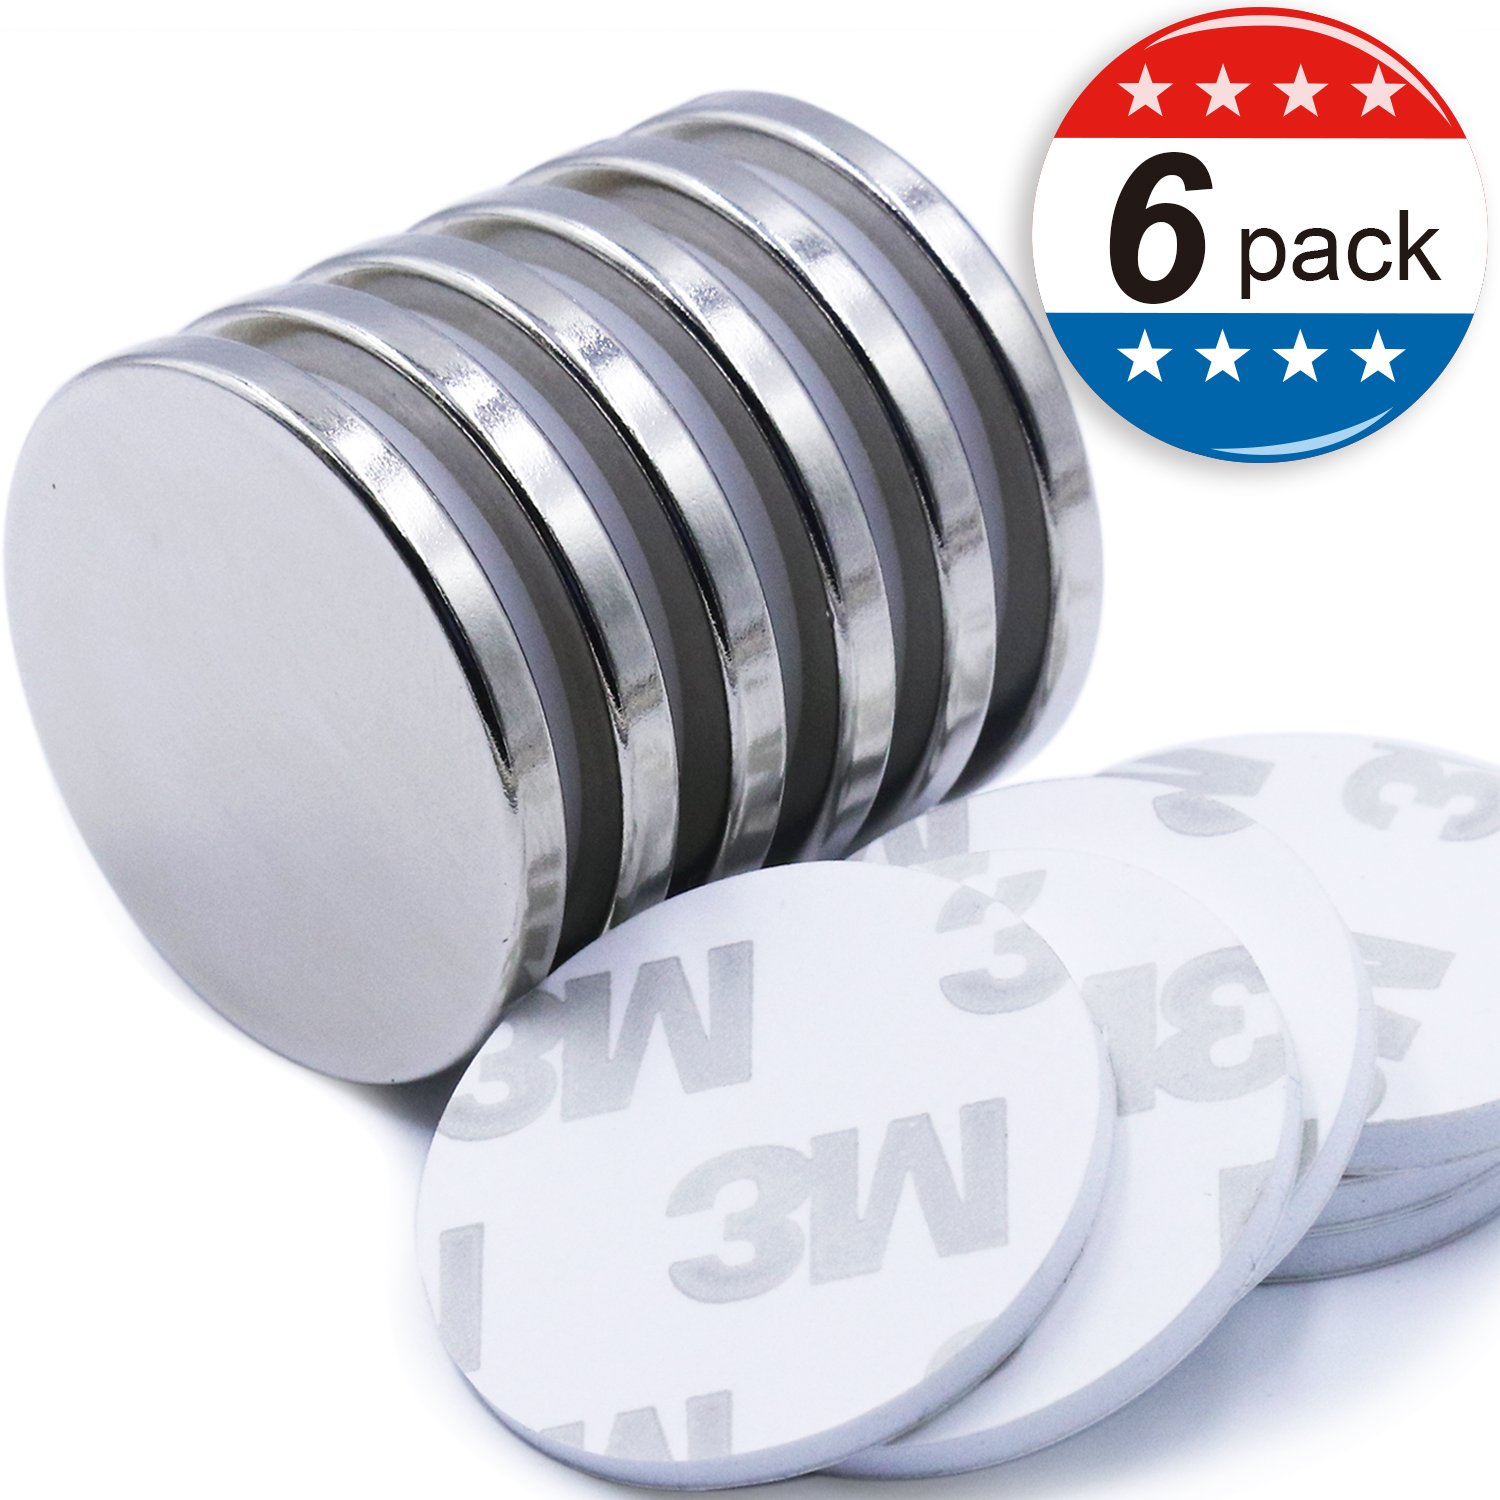 "Super Strong Neodymium Disc Magnets with Double-Sided Adhesive, Powerful Permanent Rare Earth Magnets. Fridge, DIY, Building, Scientific, Craft, and Office Magnets, 1.26""D x 1/8""H - Pack of 6"